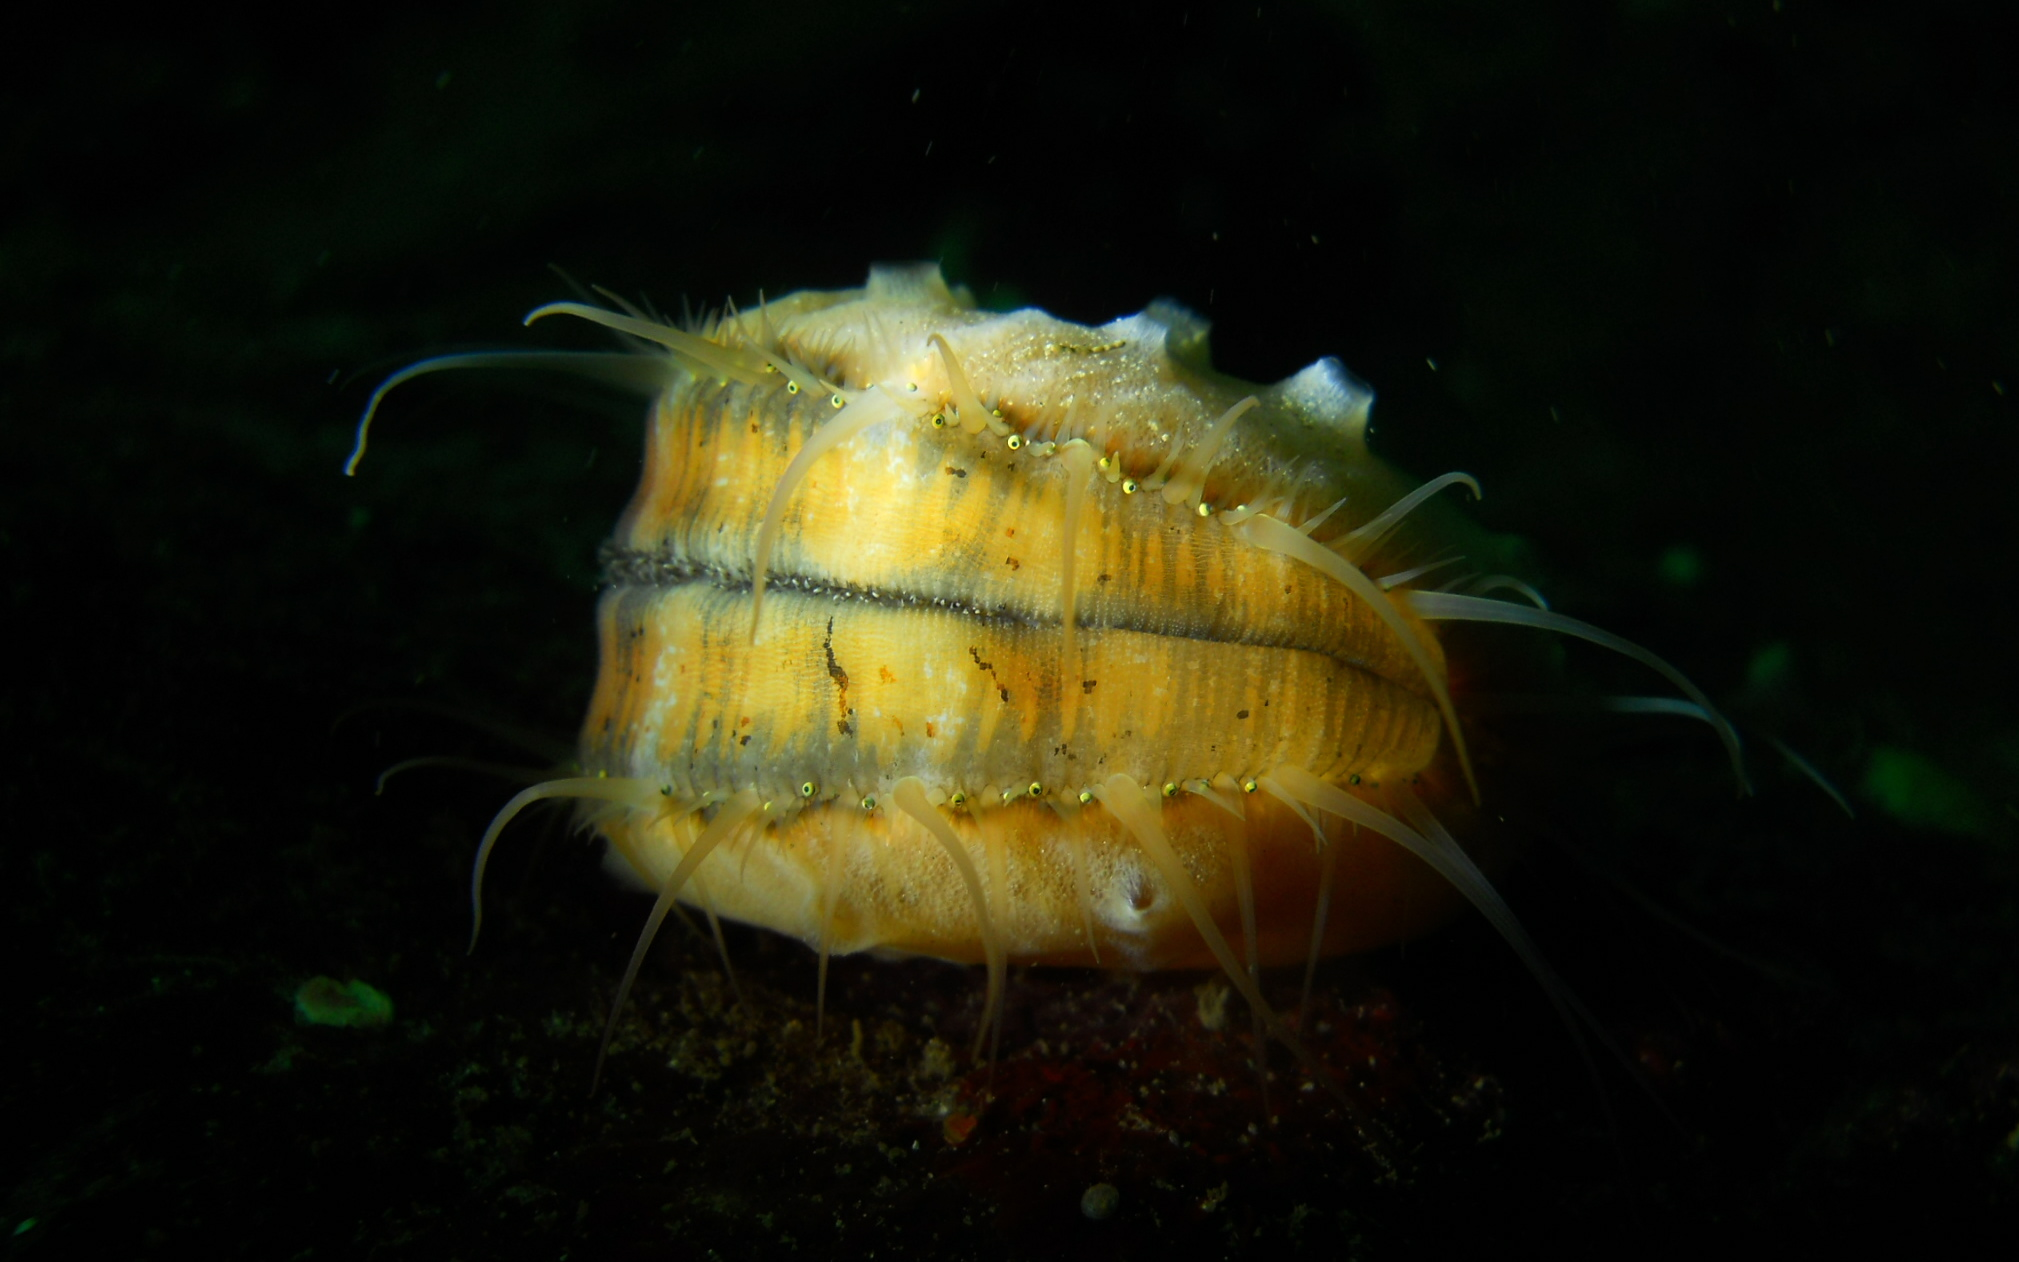 Swimming Scallop